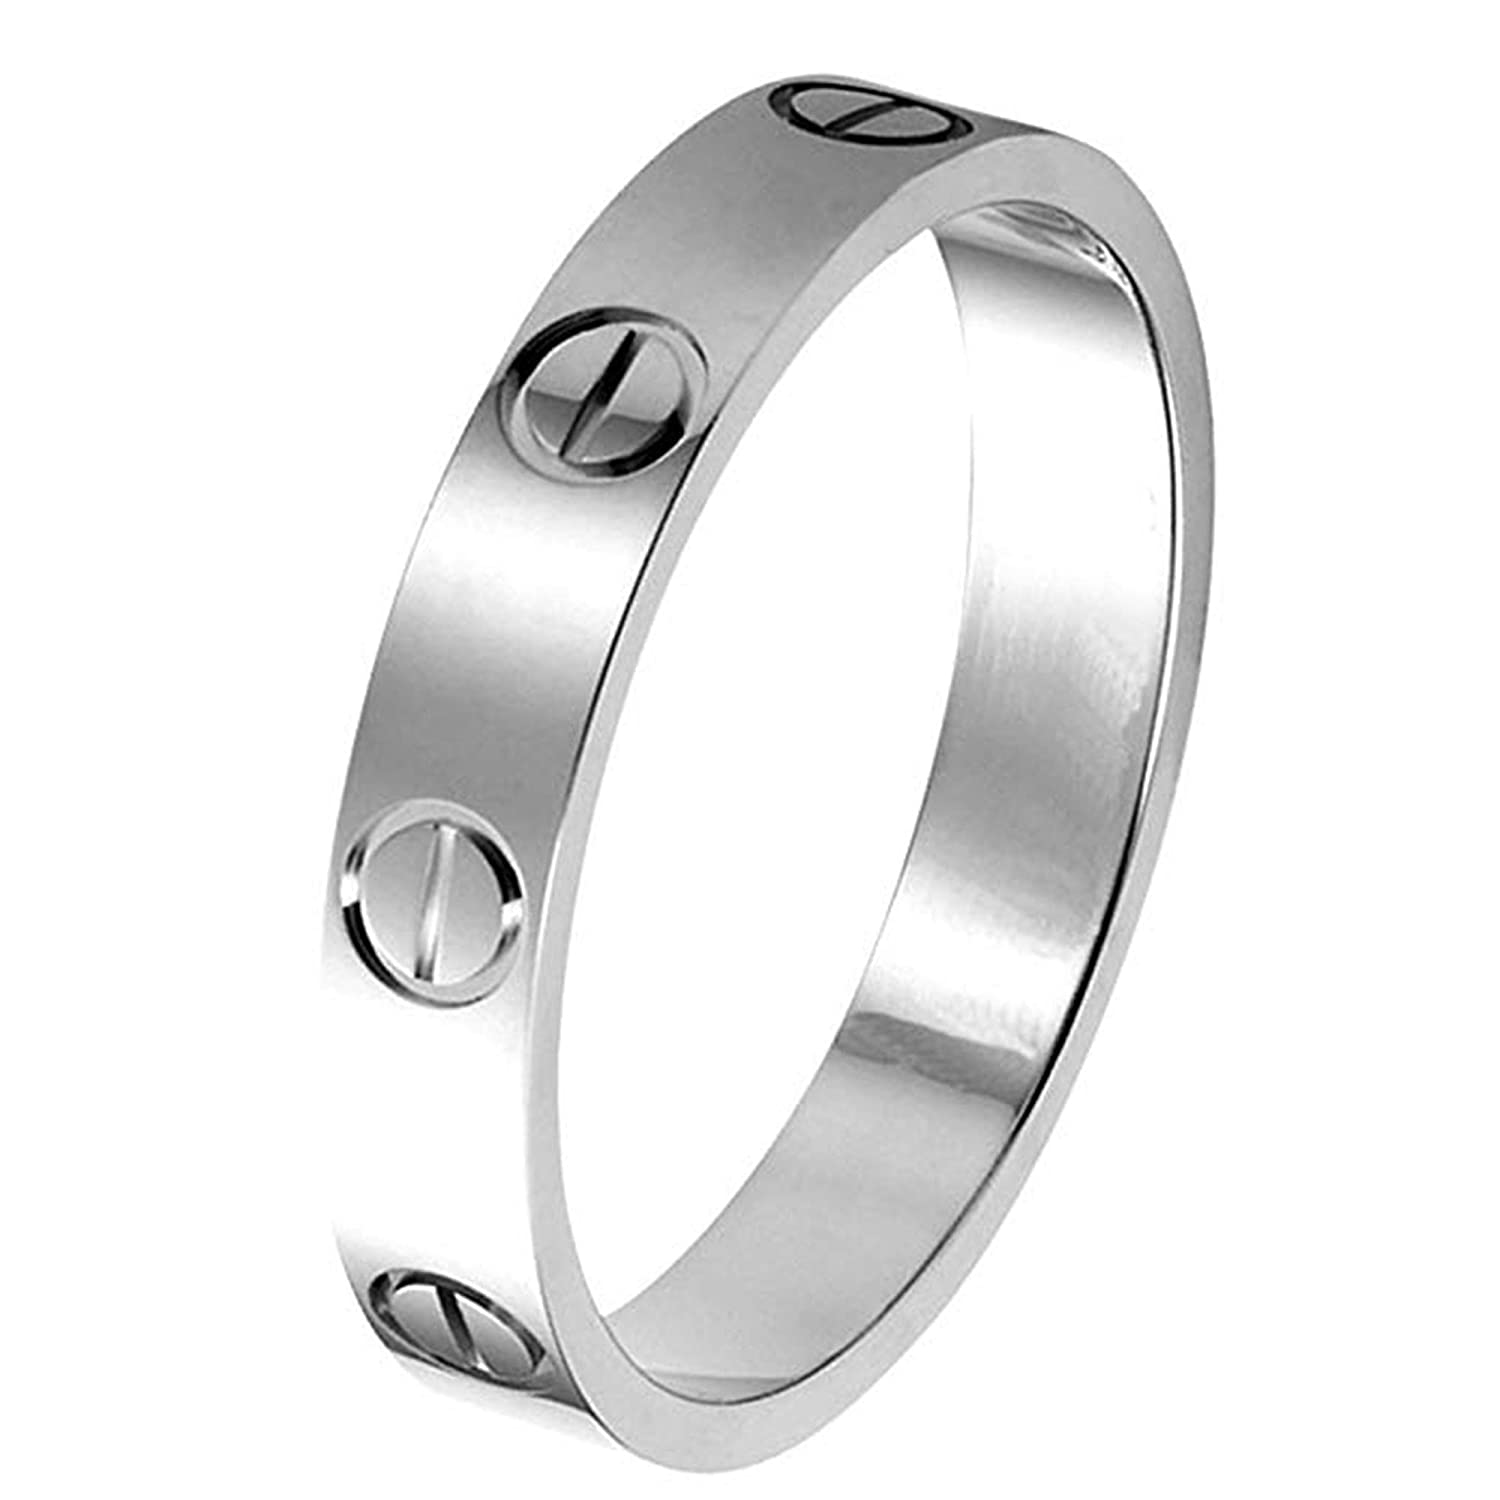 SHIRIA Love Rings Lifetime Promise with Screw Design Best Gifts for Love with Valentines Day Promise Engagement Wedding